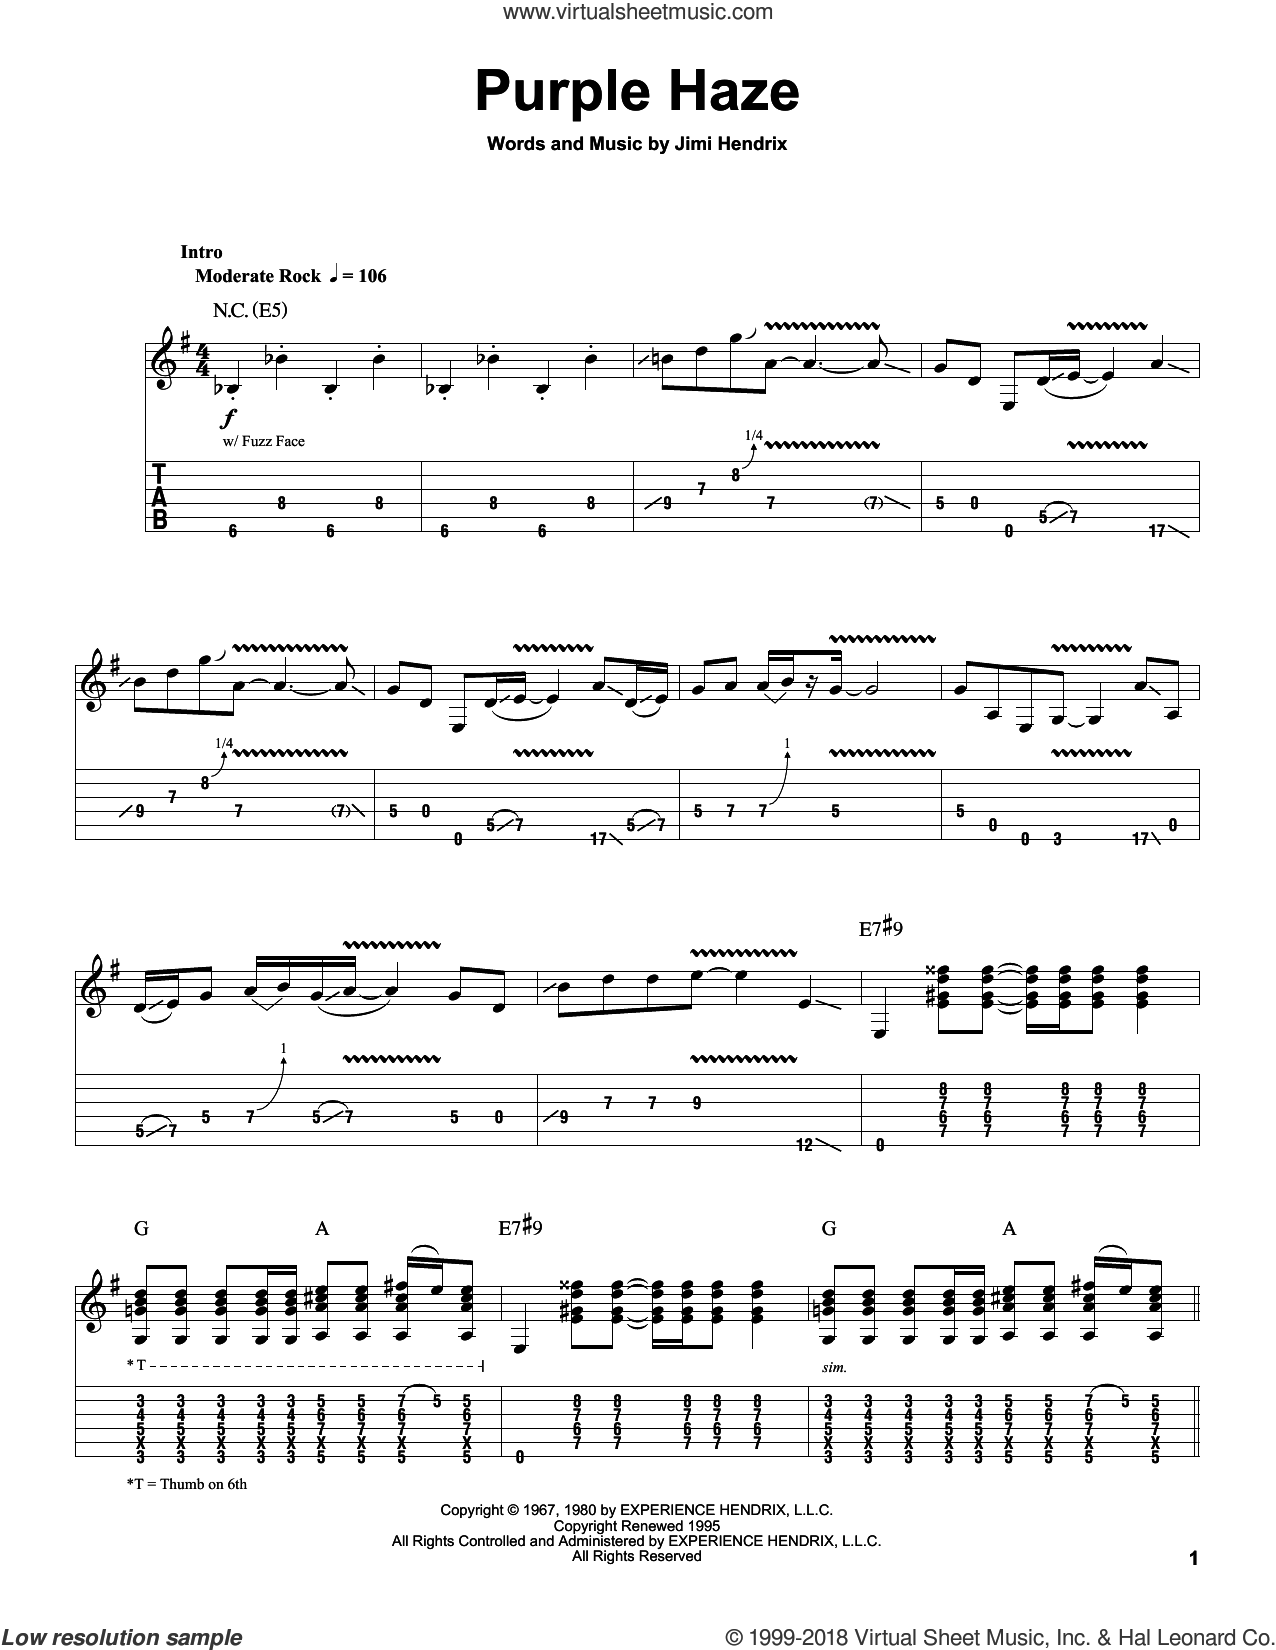 Purple Haze sheet music for guitar (tablature, play-along) by Jimi Hendrix, intermediate skill level